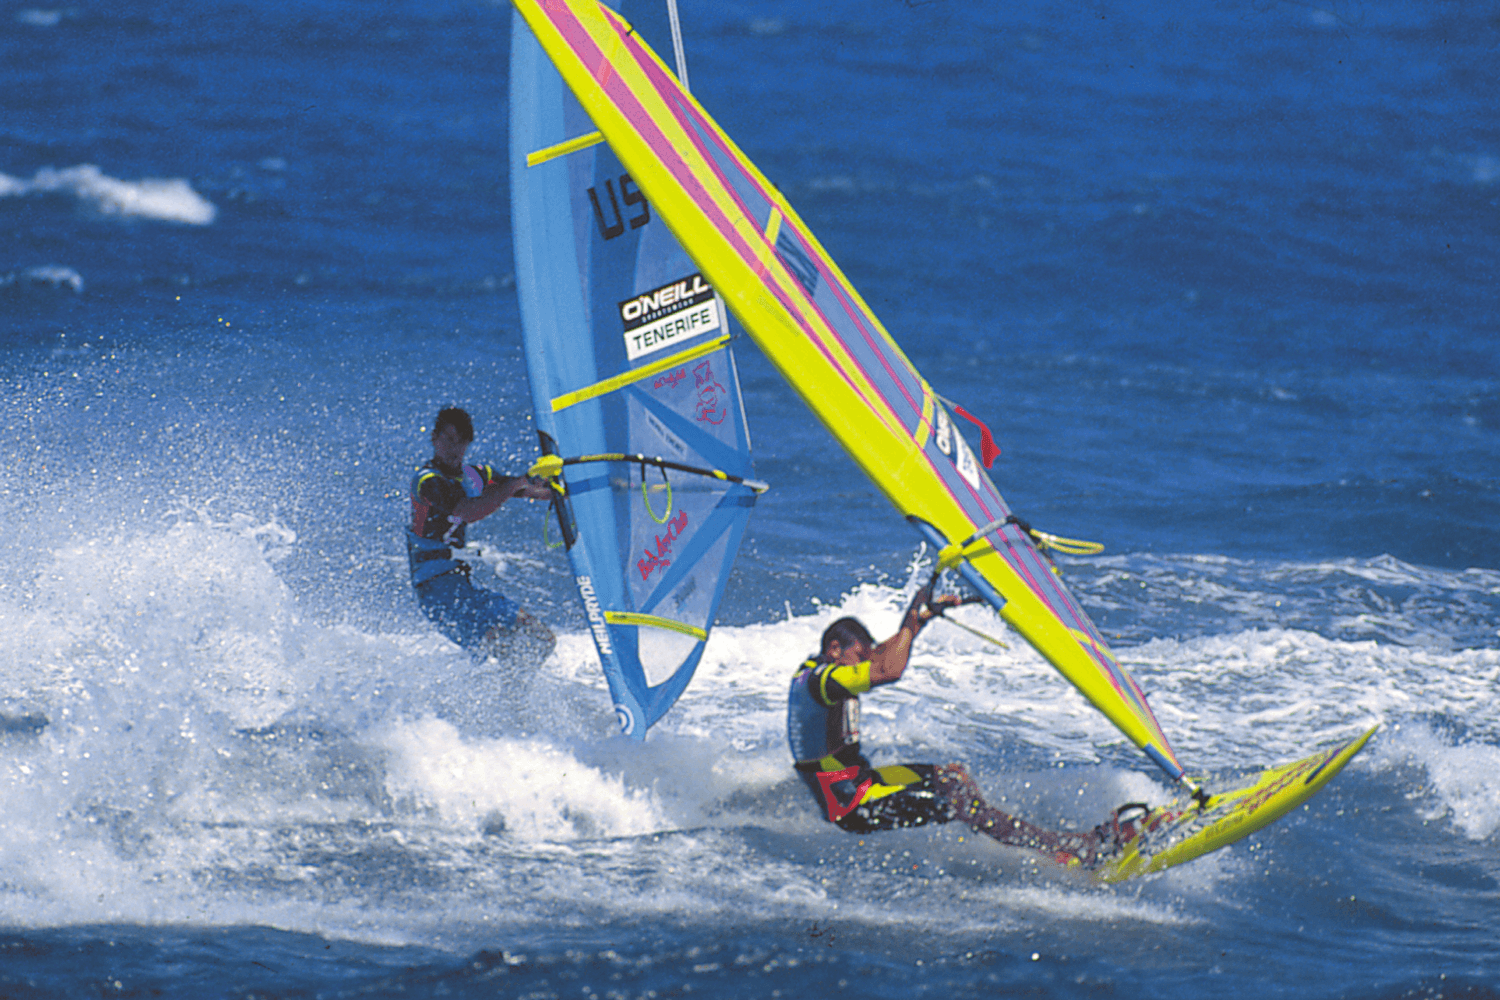 Wind surfing, water sports